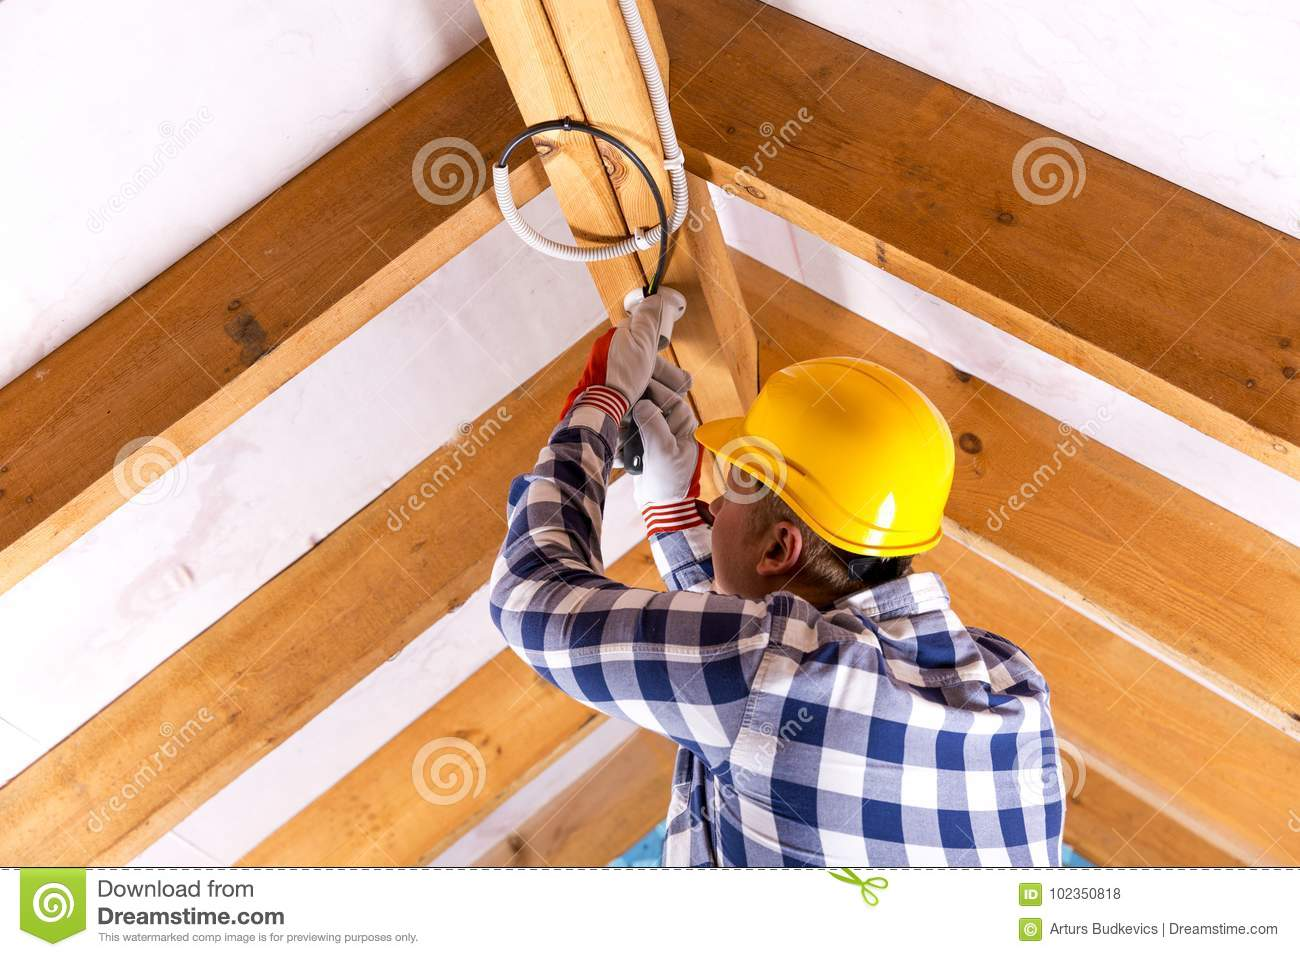 Electrician working with wires at attic renovation site